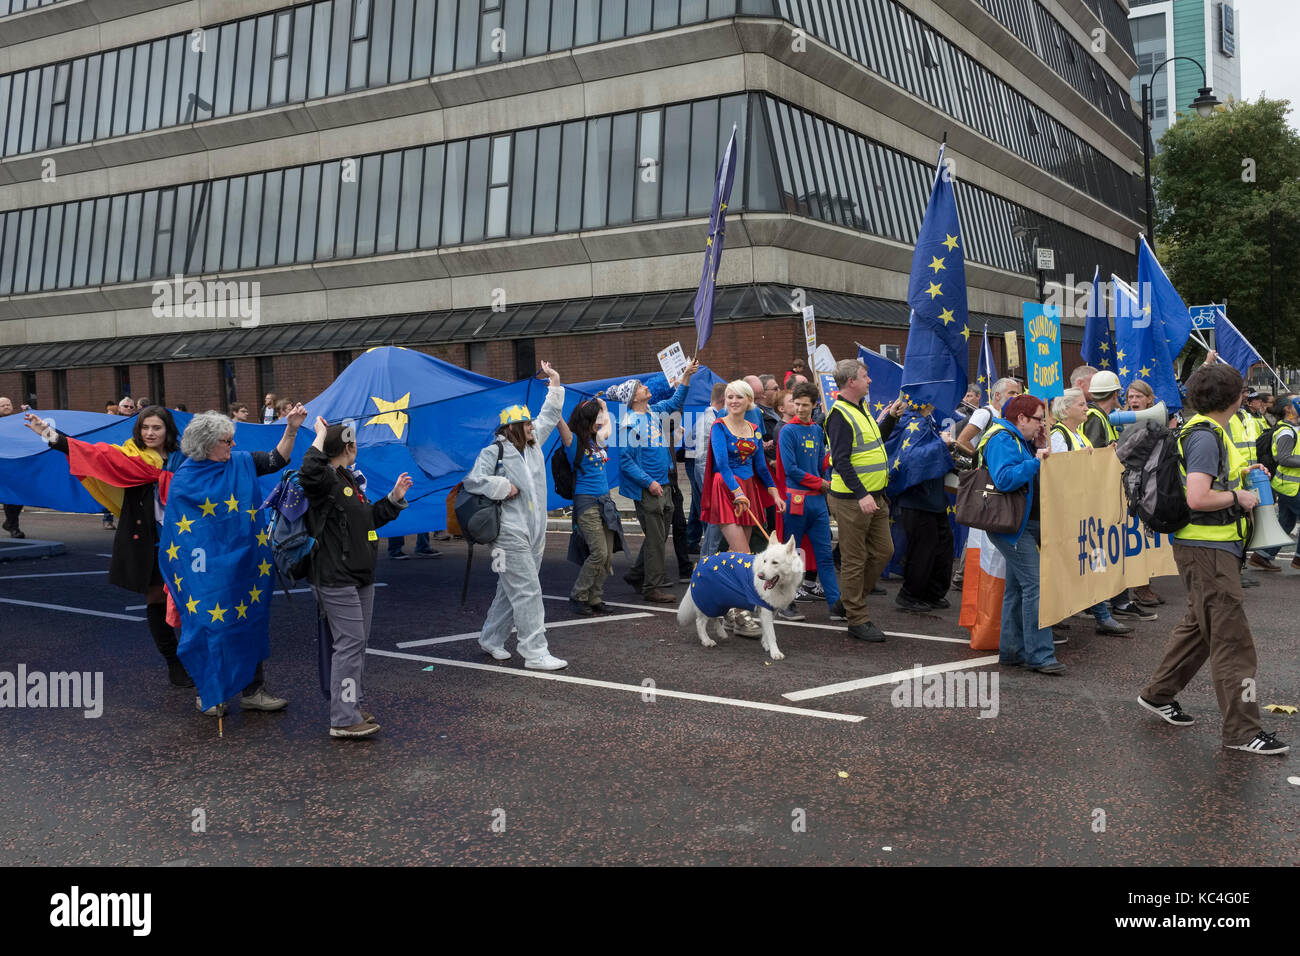 Manchester, UK. 1st Oct, 2017. A large anti Brexit march by thousands of Remain supporters, taking place during - Stock Image